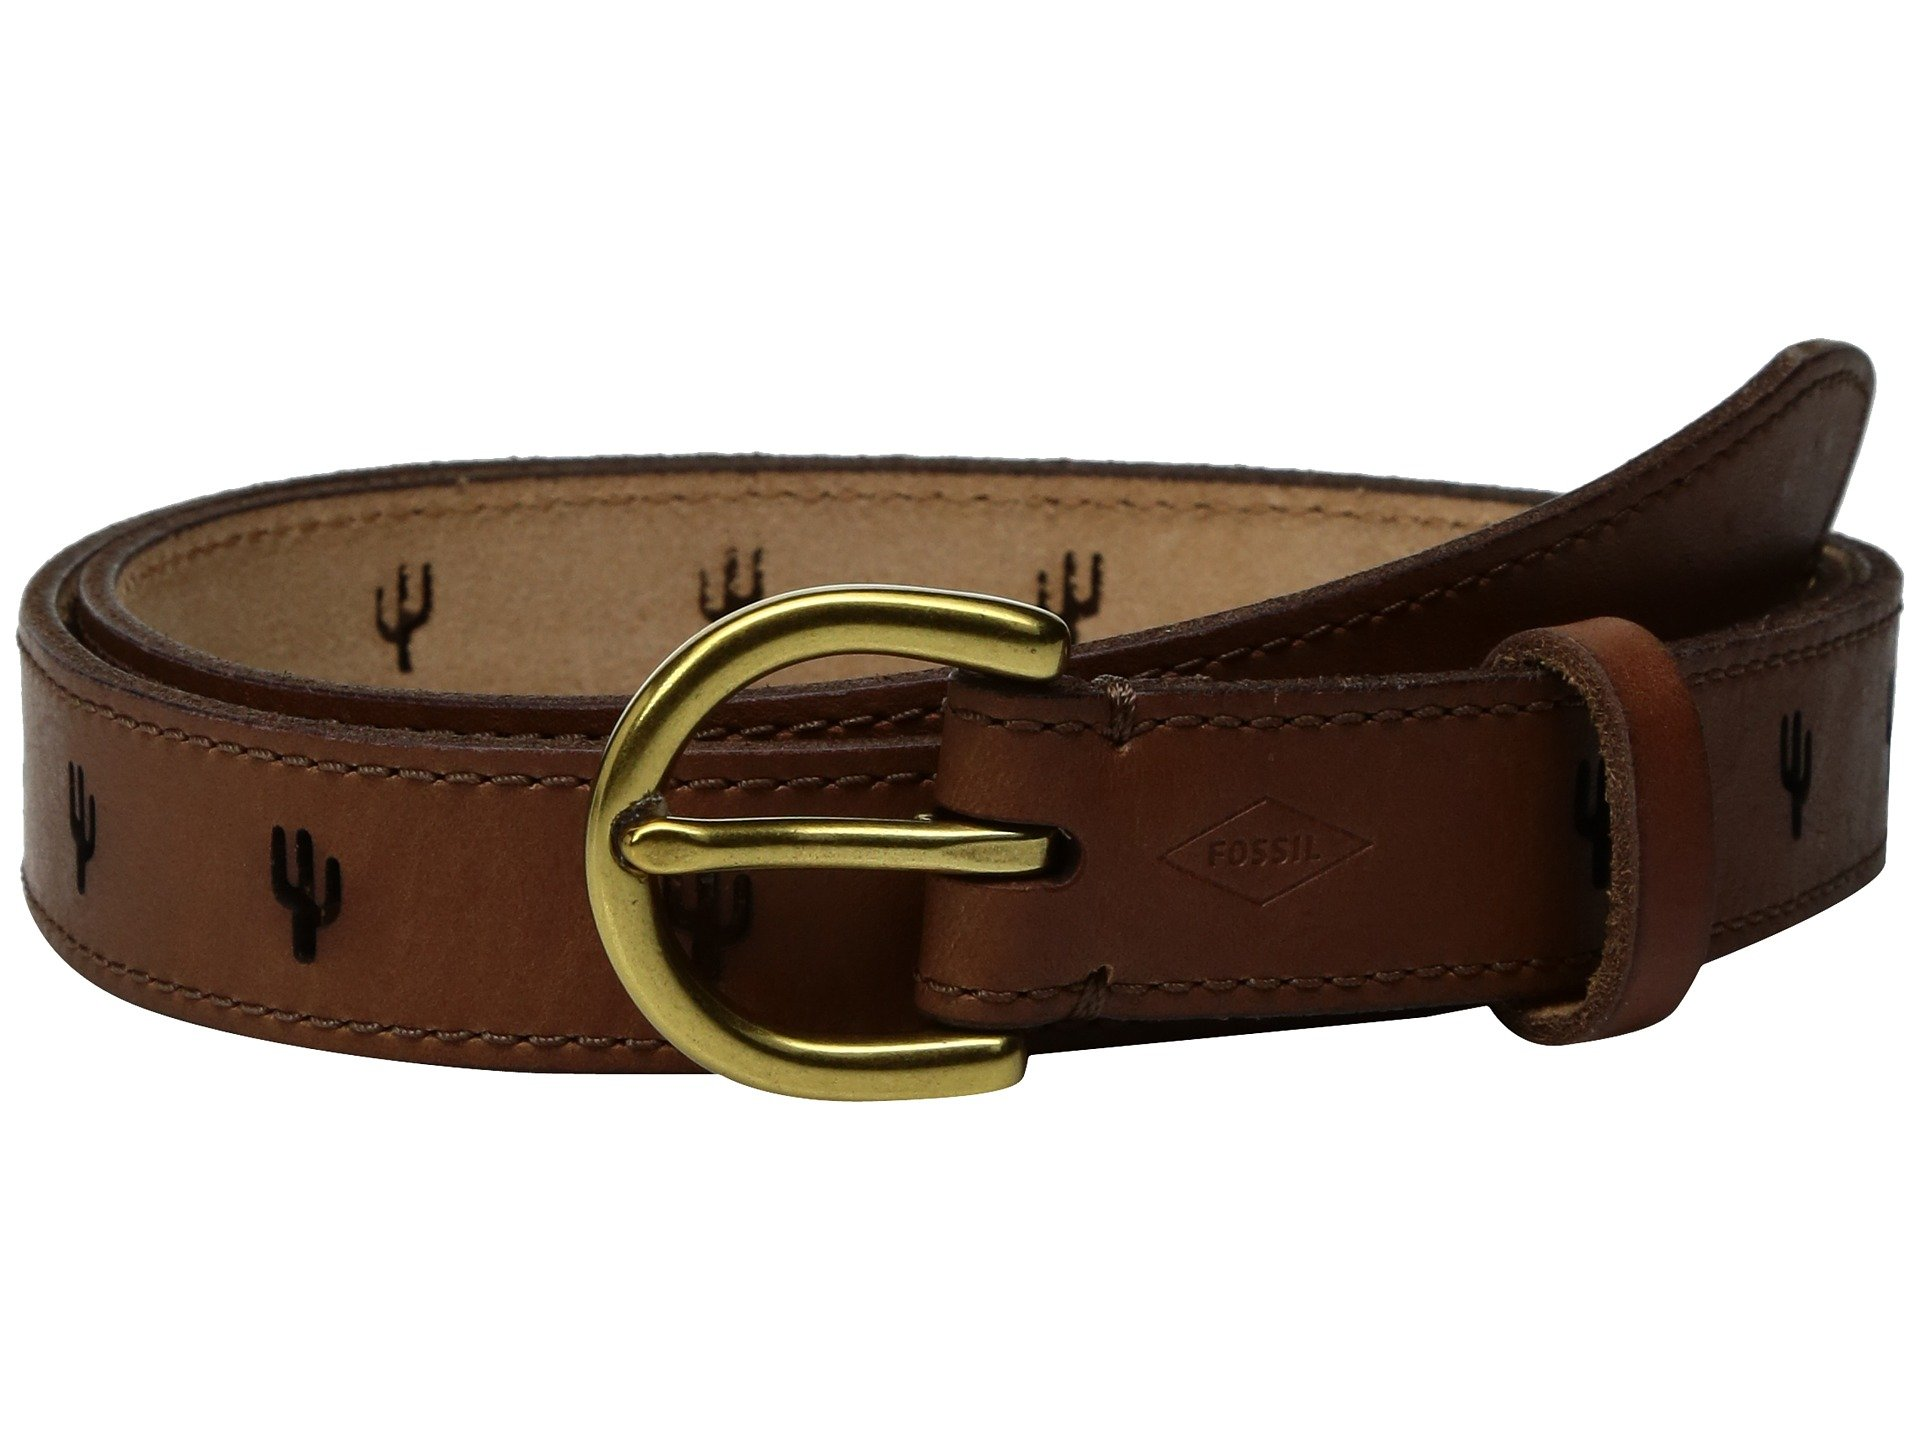 Correa o Cinturon para Mujer Fossil Cactus Perforated Belt  + Fossil en VeoyCompro.net